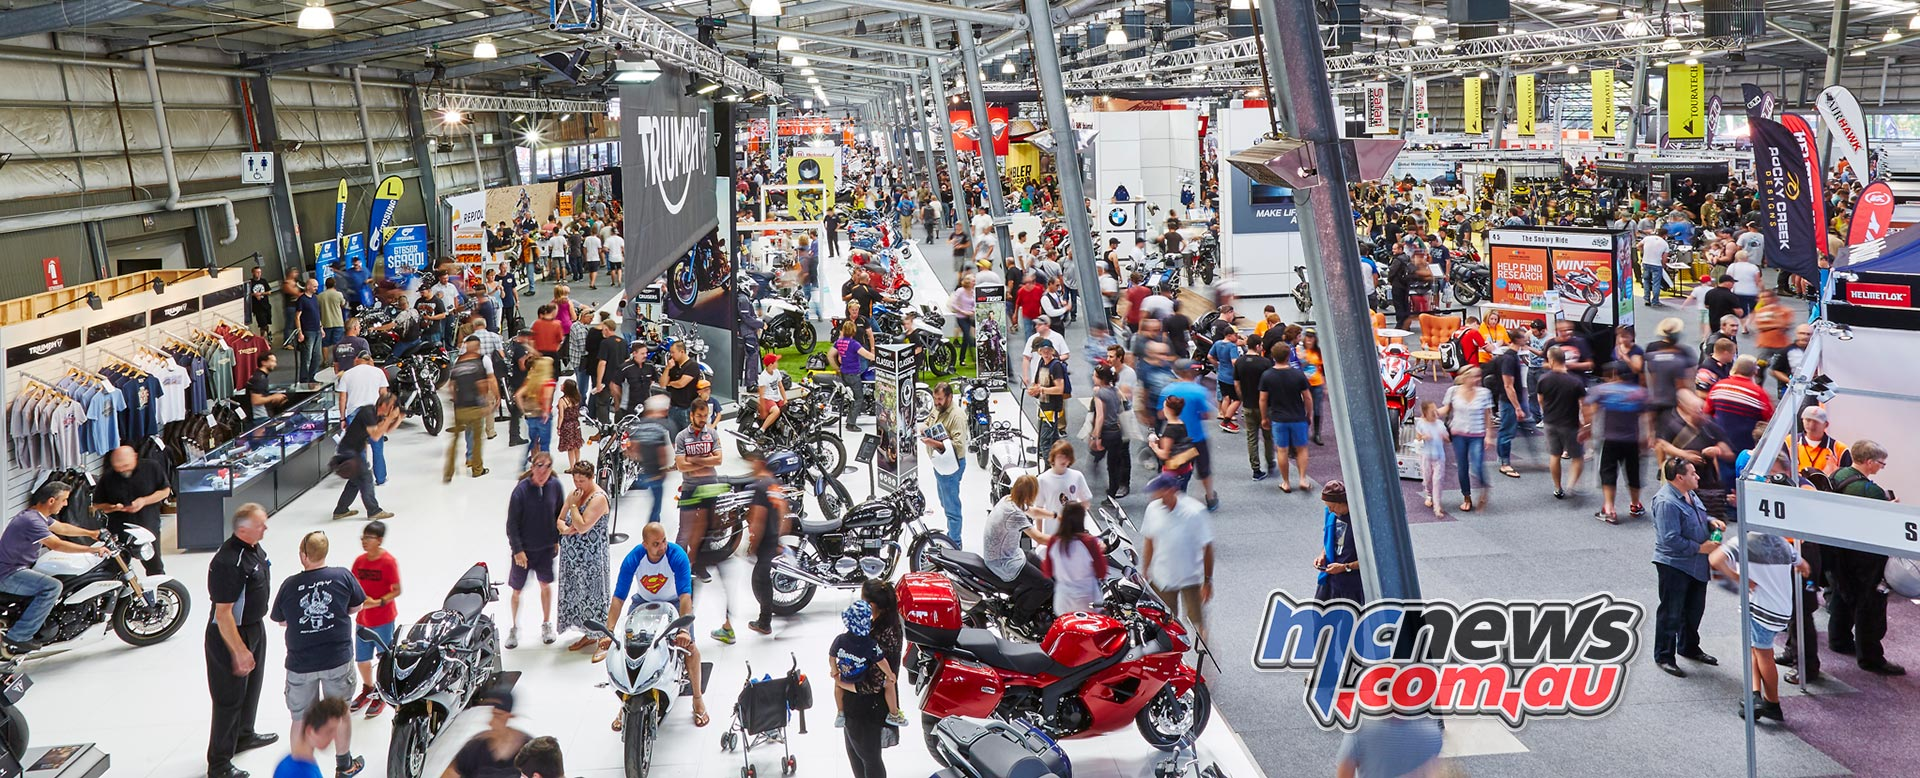 The Australian Motorcycle Festival replaces the Moto Expo